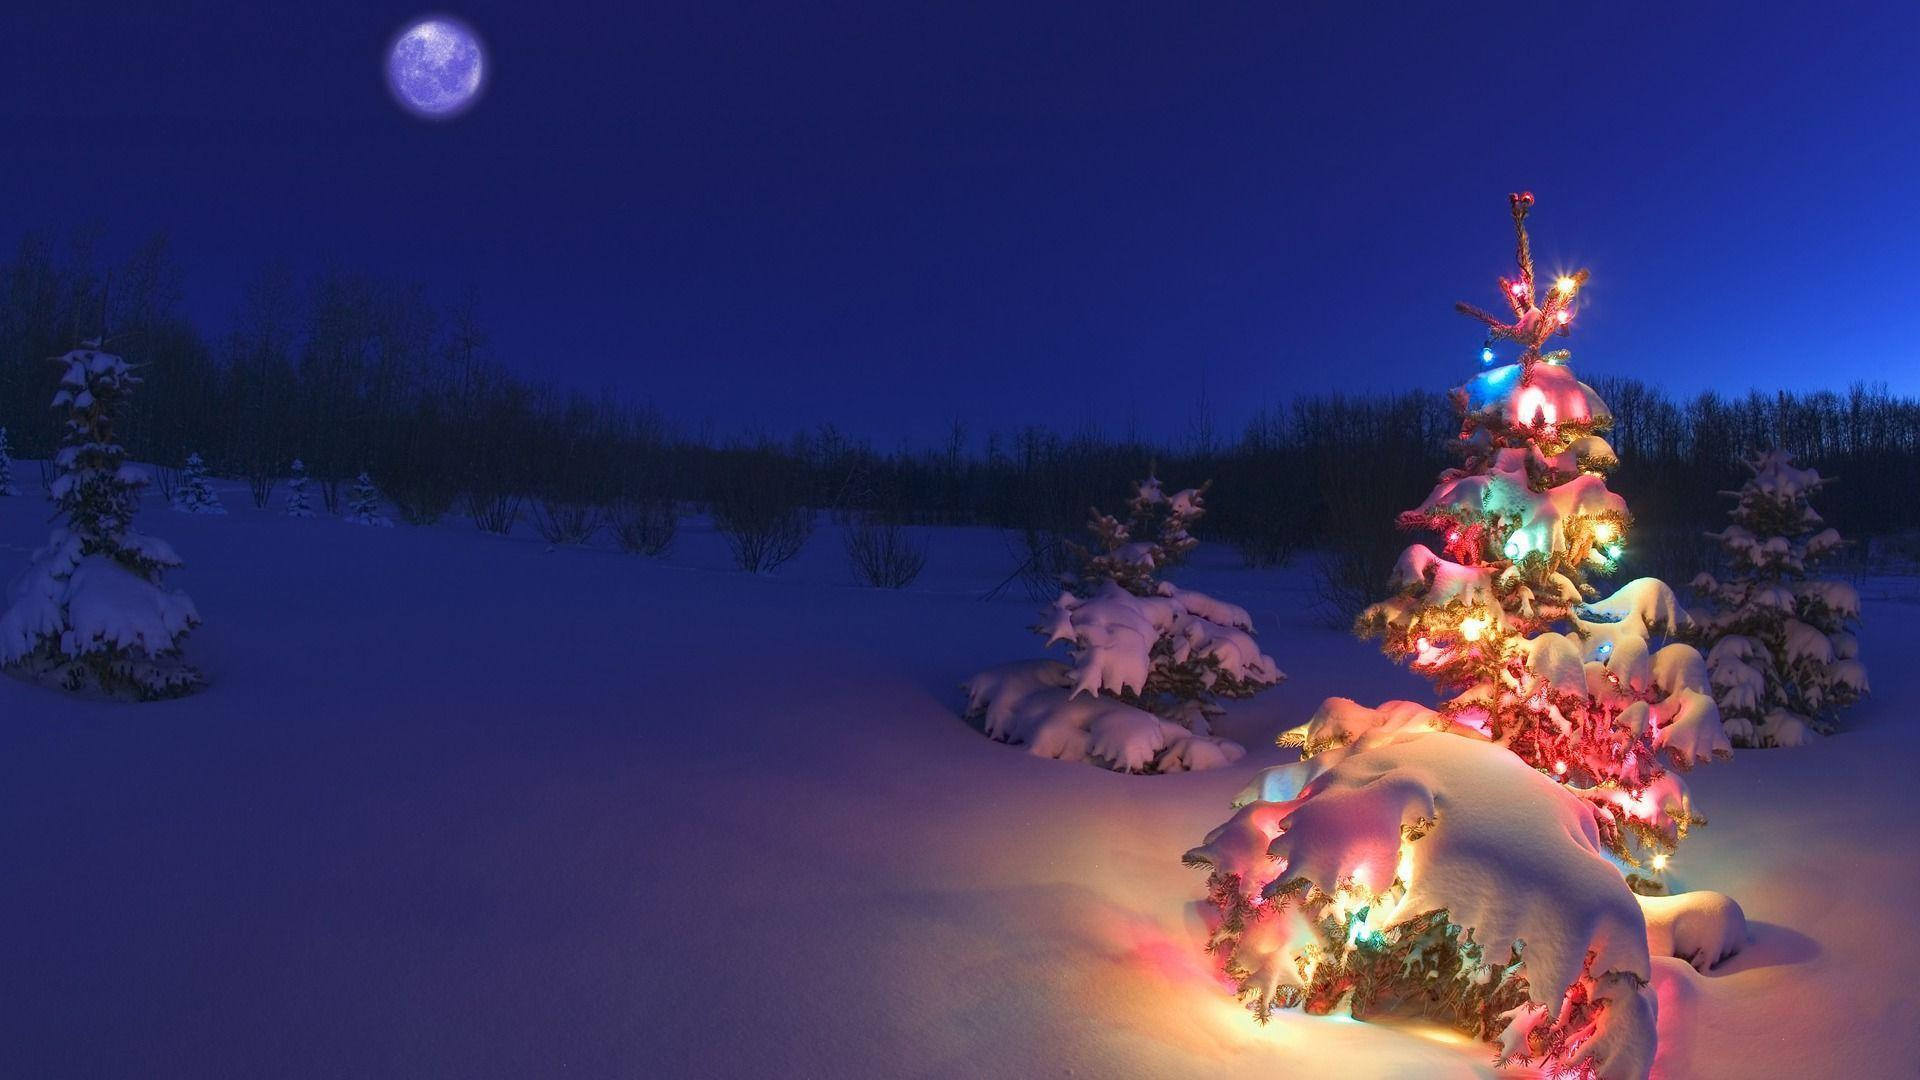 Amazing Christmas Wallpaper Android